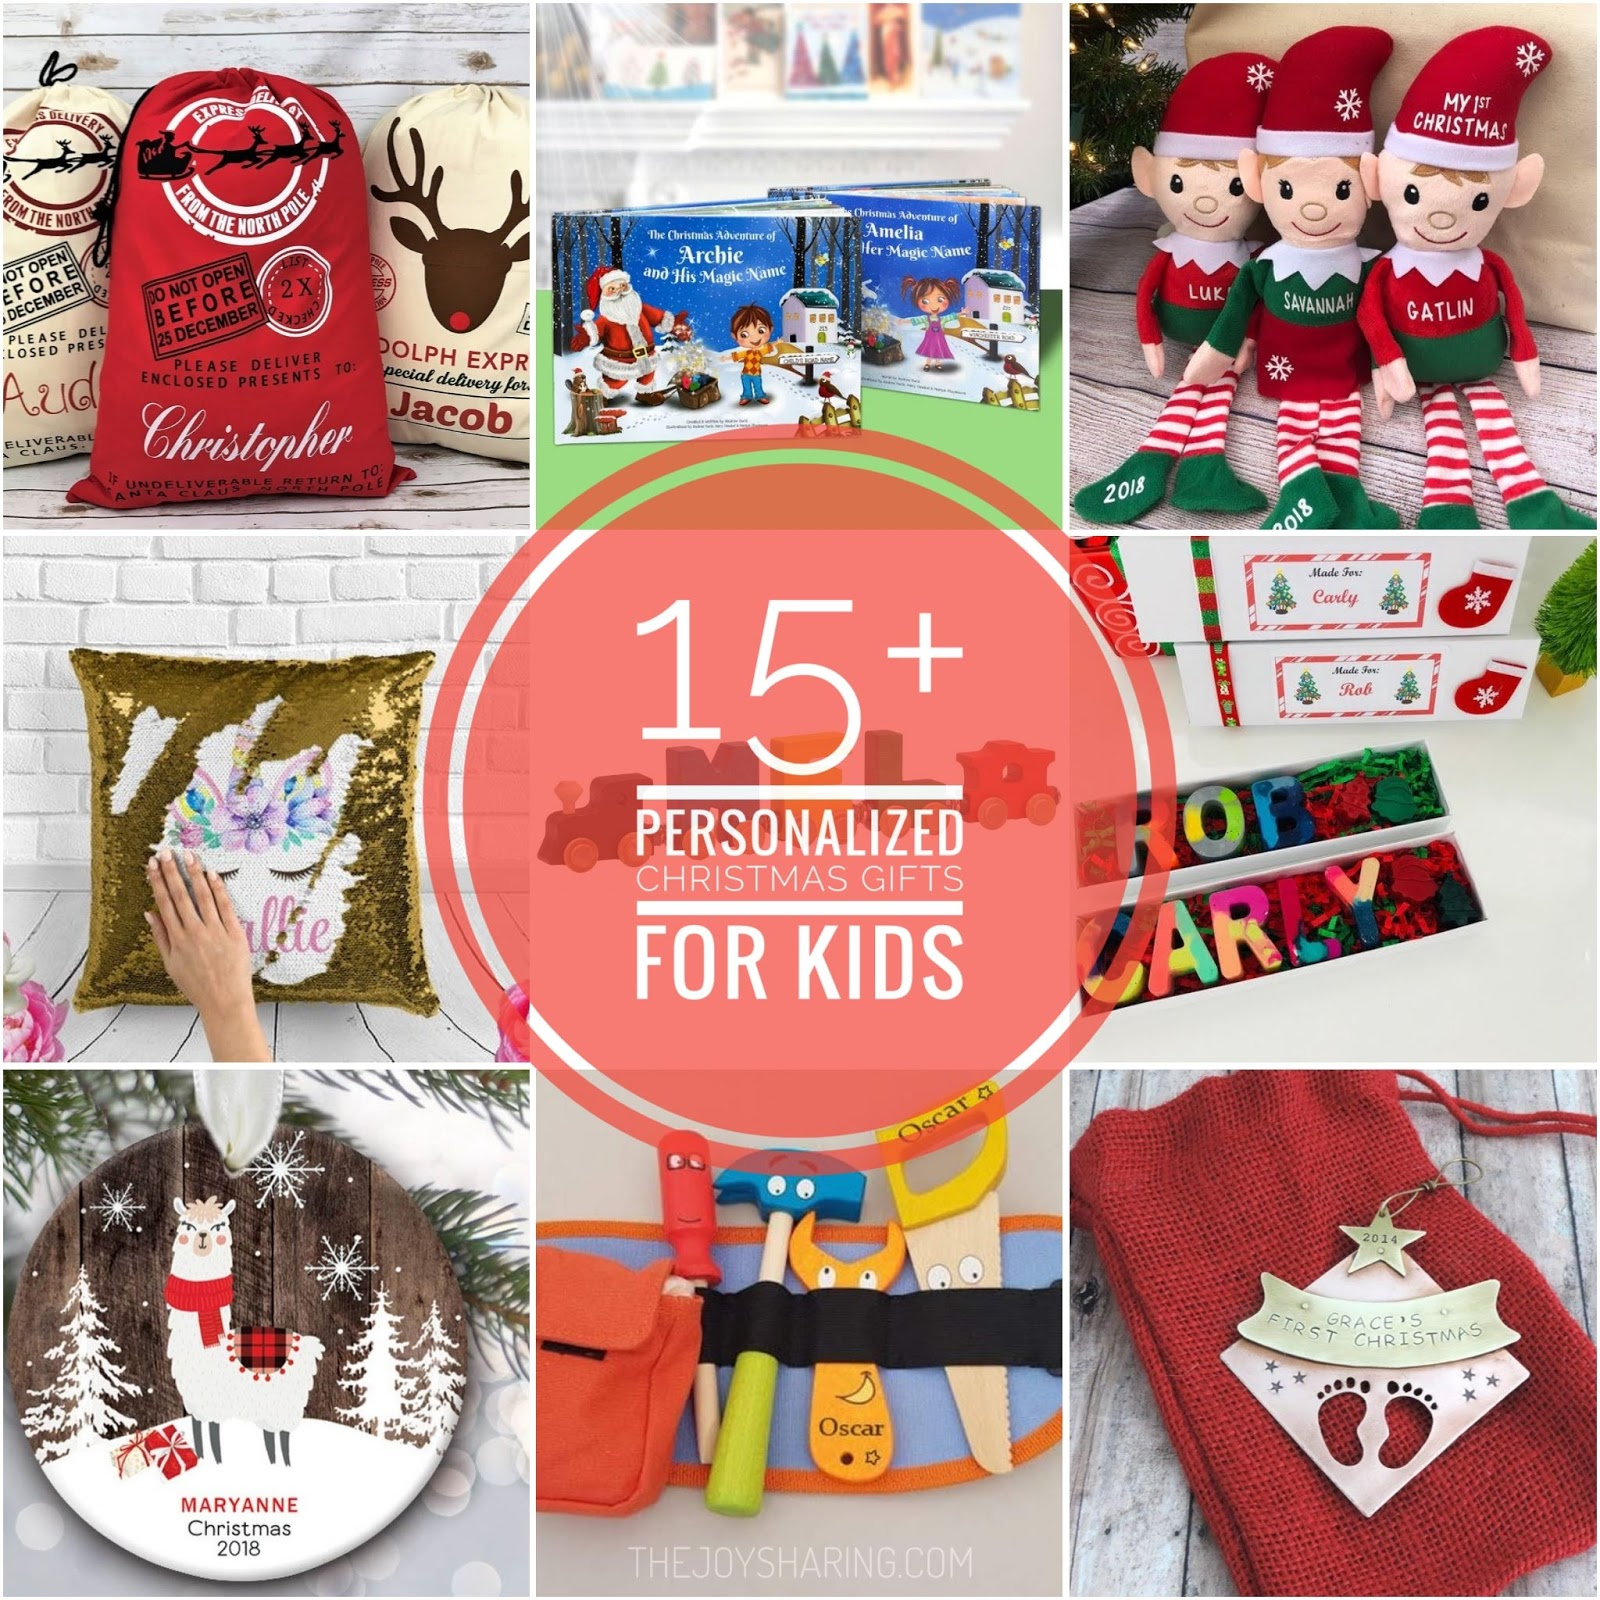 15+ Personalized Christmas Gifts for Kids - The Joy of Sharing